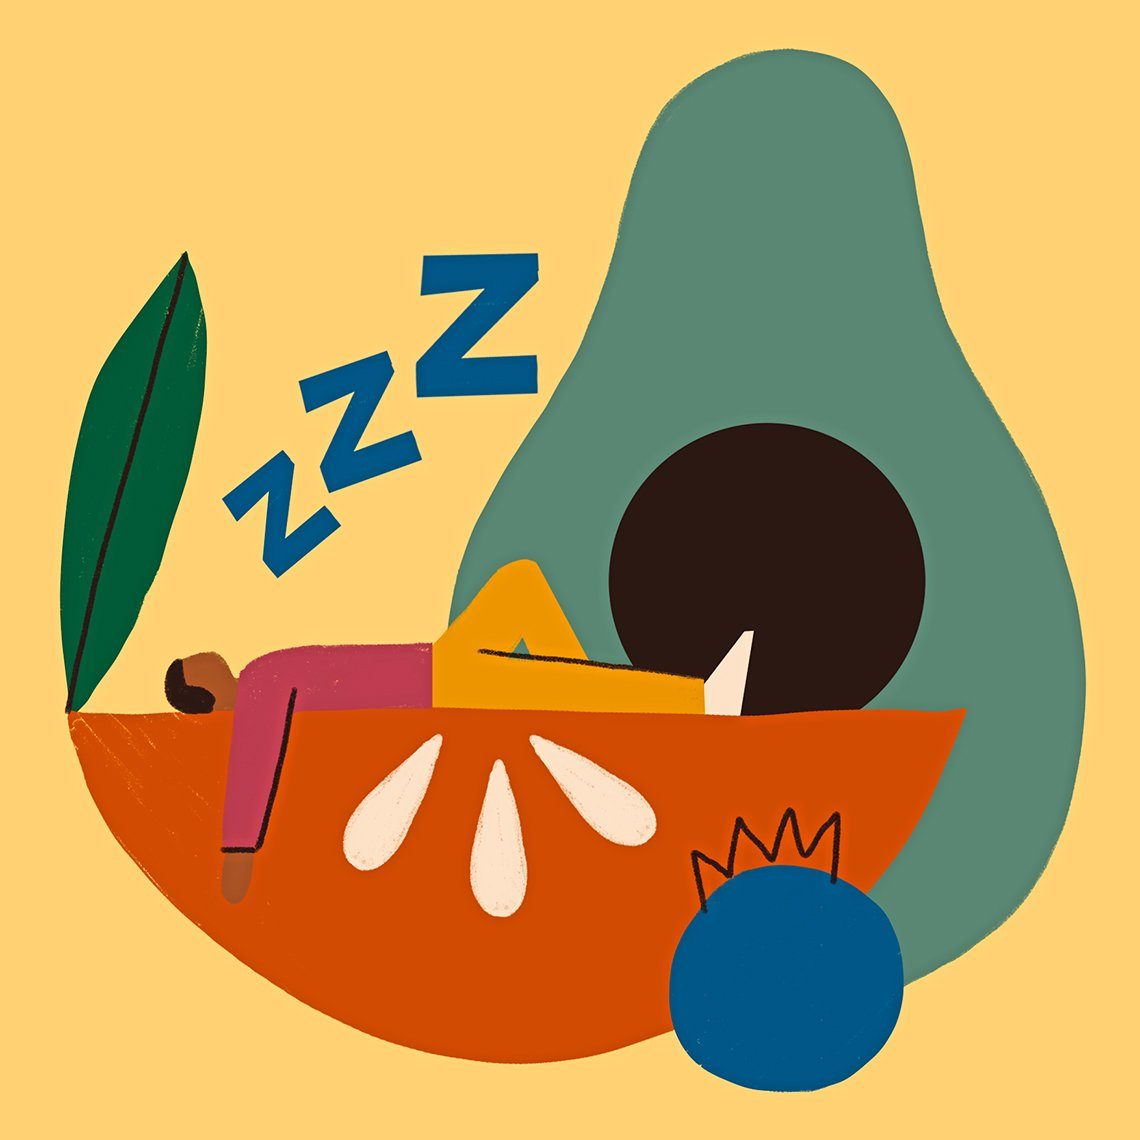 illustration of a cartoon person sleeping on an apple slice next to an avocado and blueberry